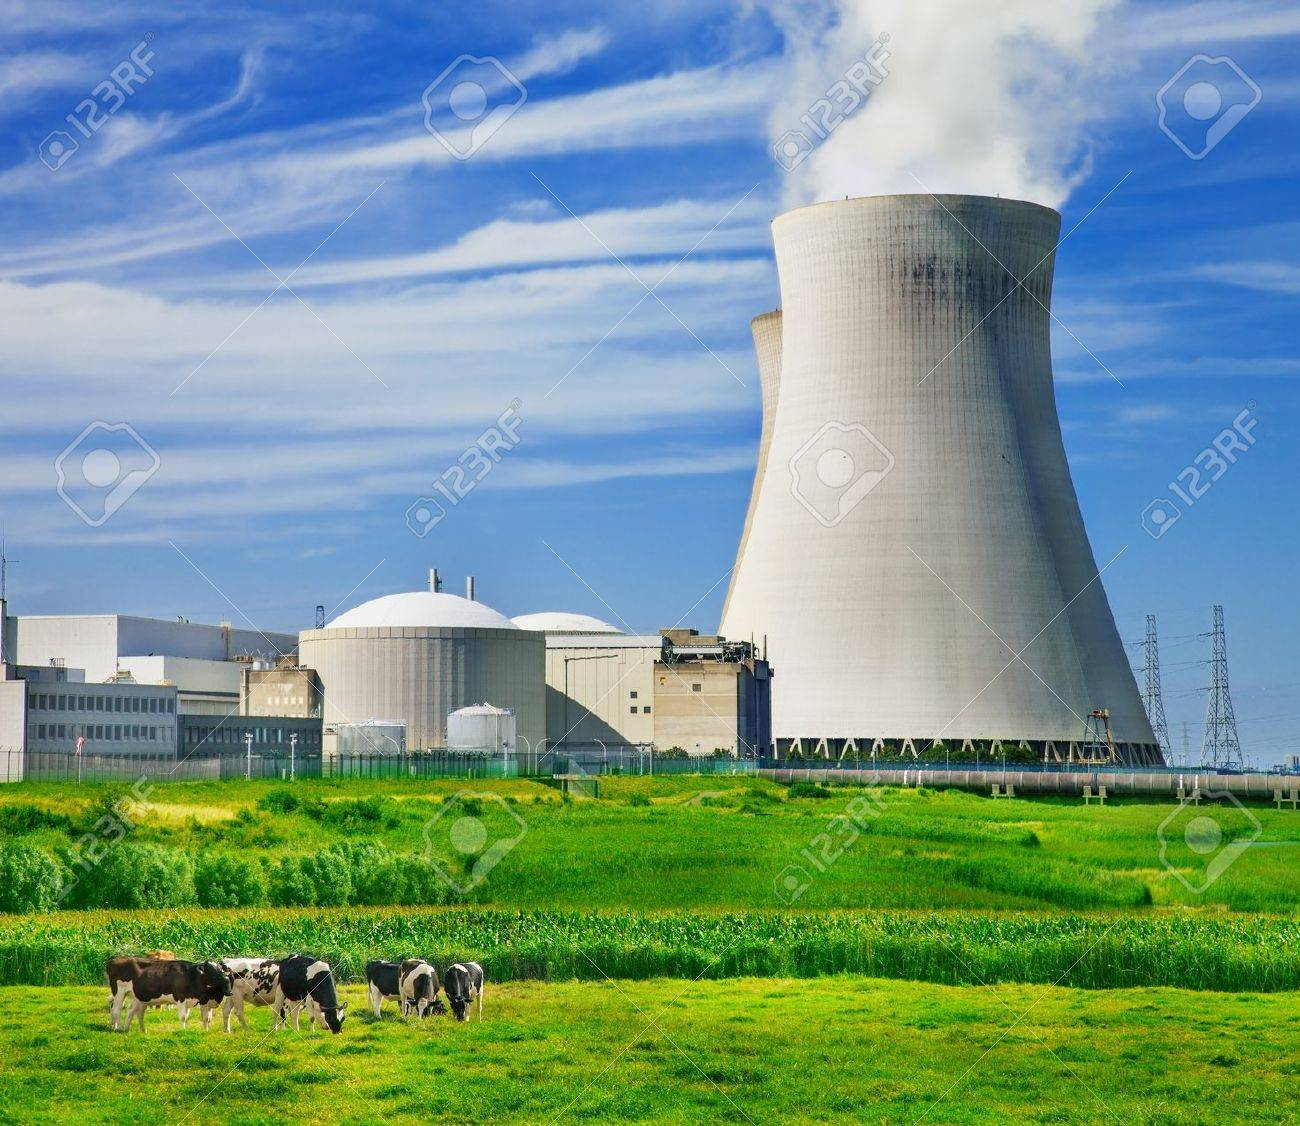 Cows grazing close to a nuclear power station - 21427796